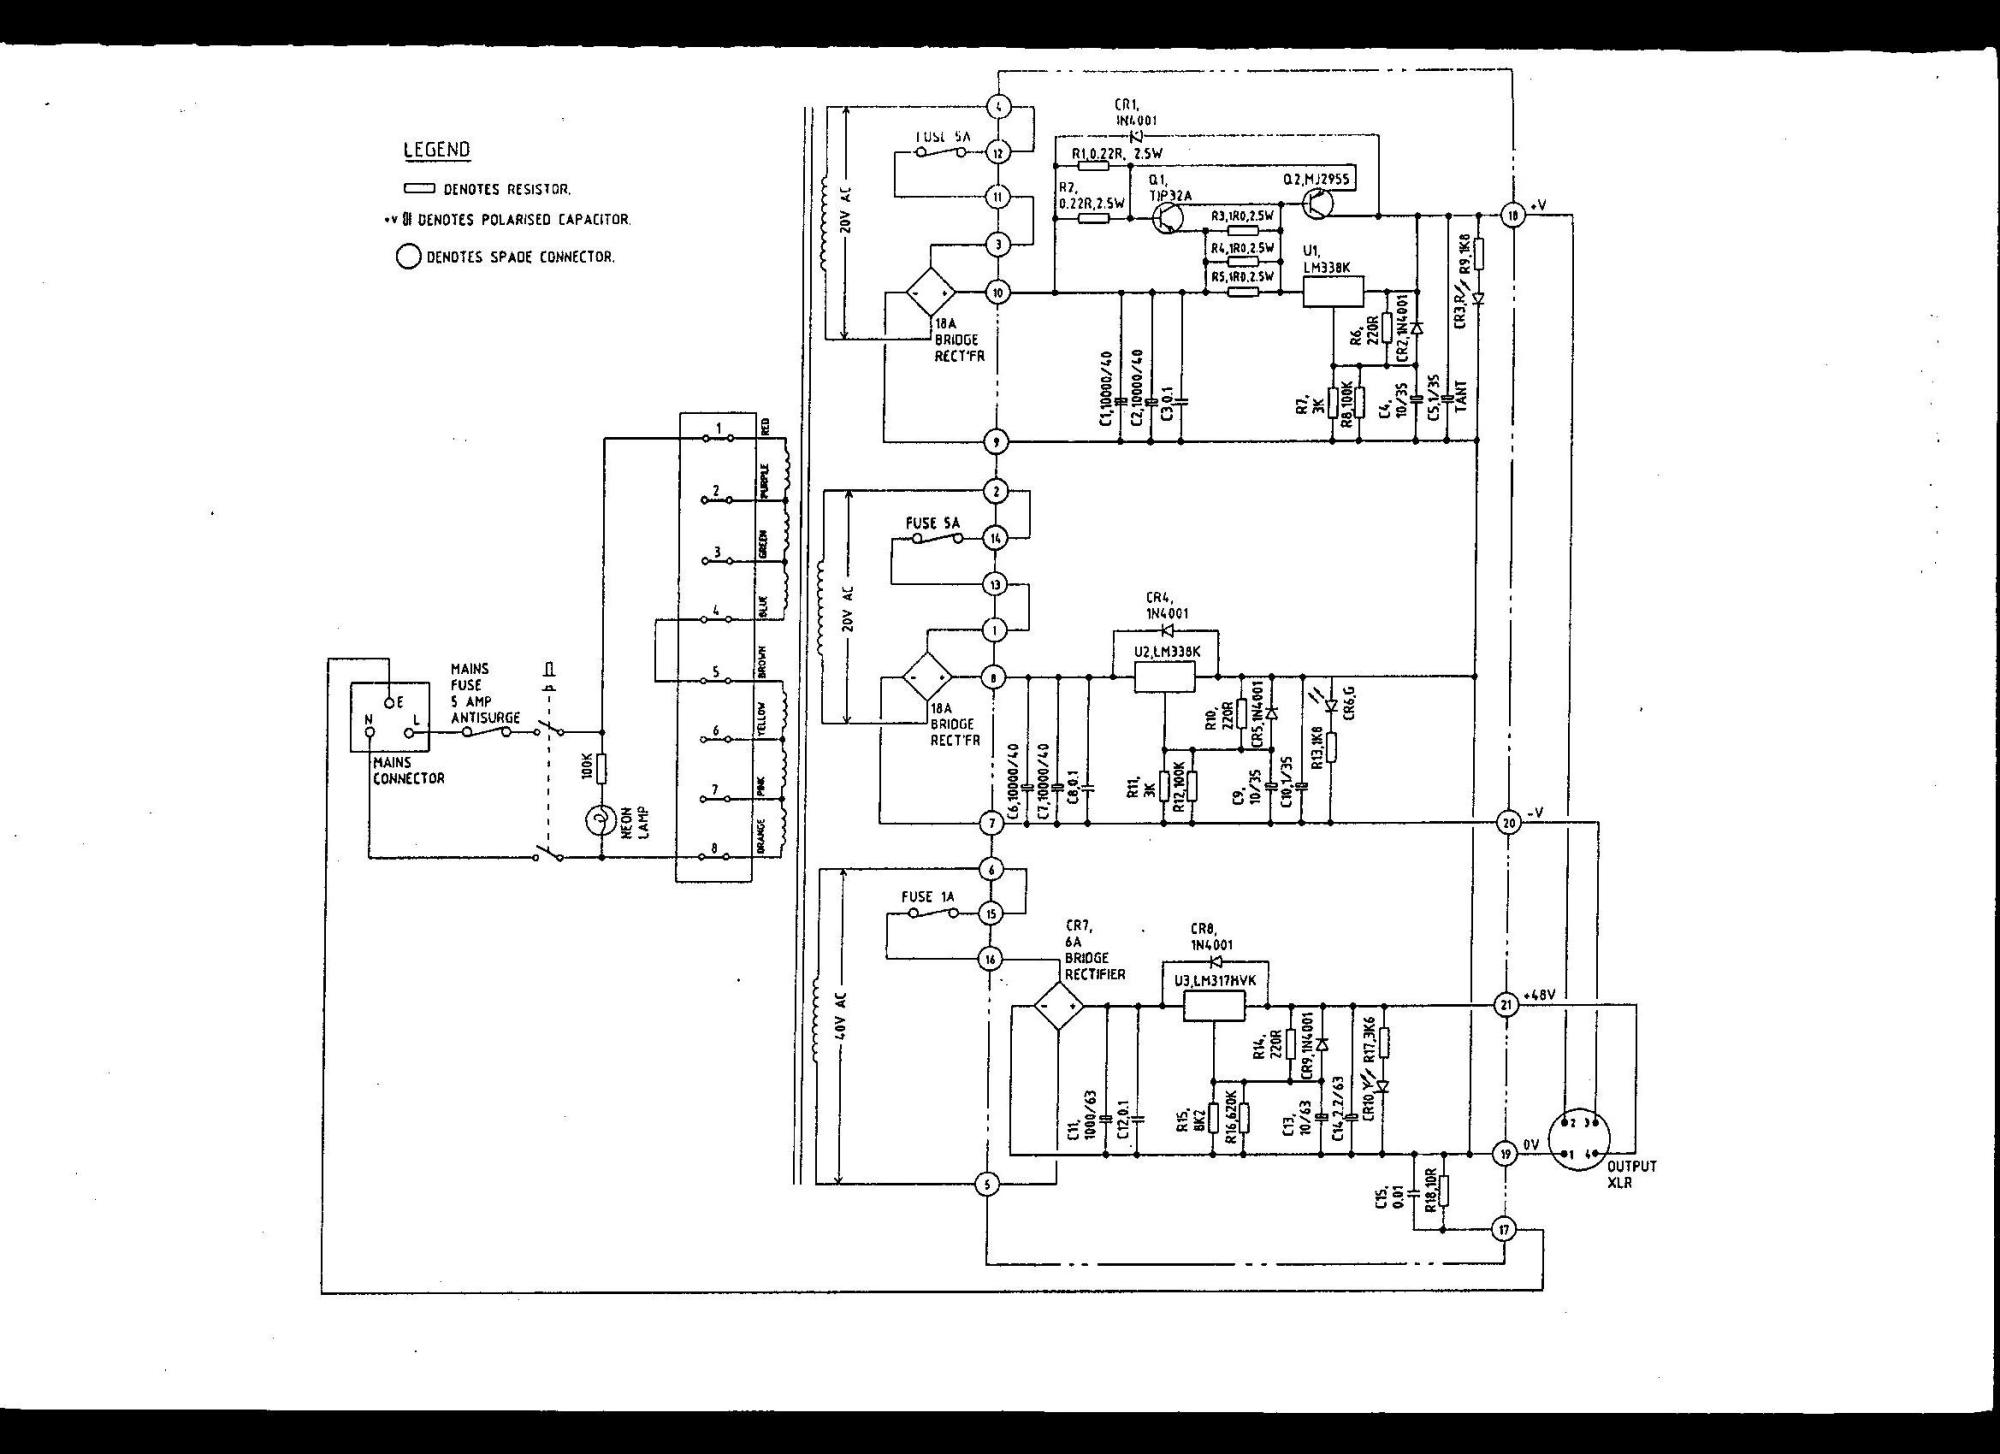 hight resolution of https i ibb co j8119fd power distribution board voltage jpg and this is the schematic of the meters psu